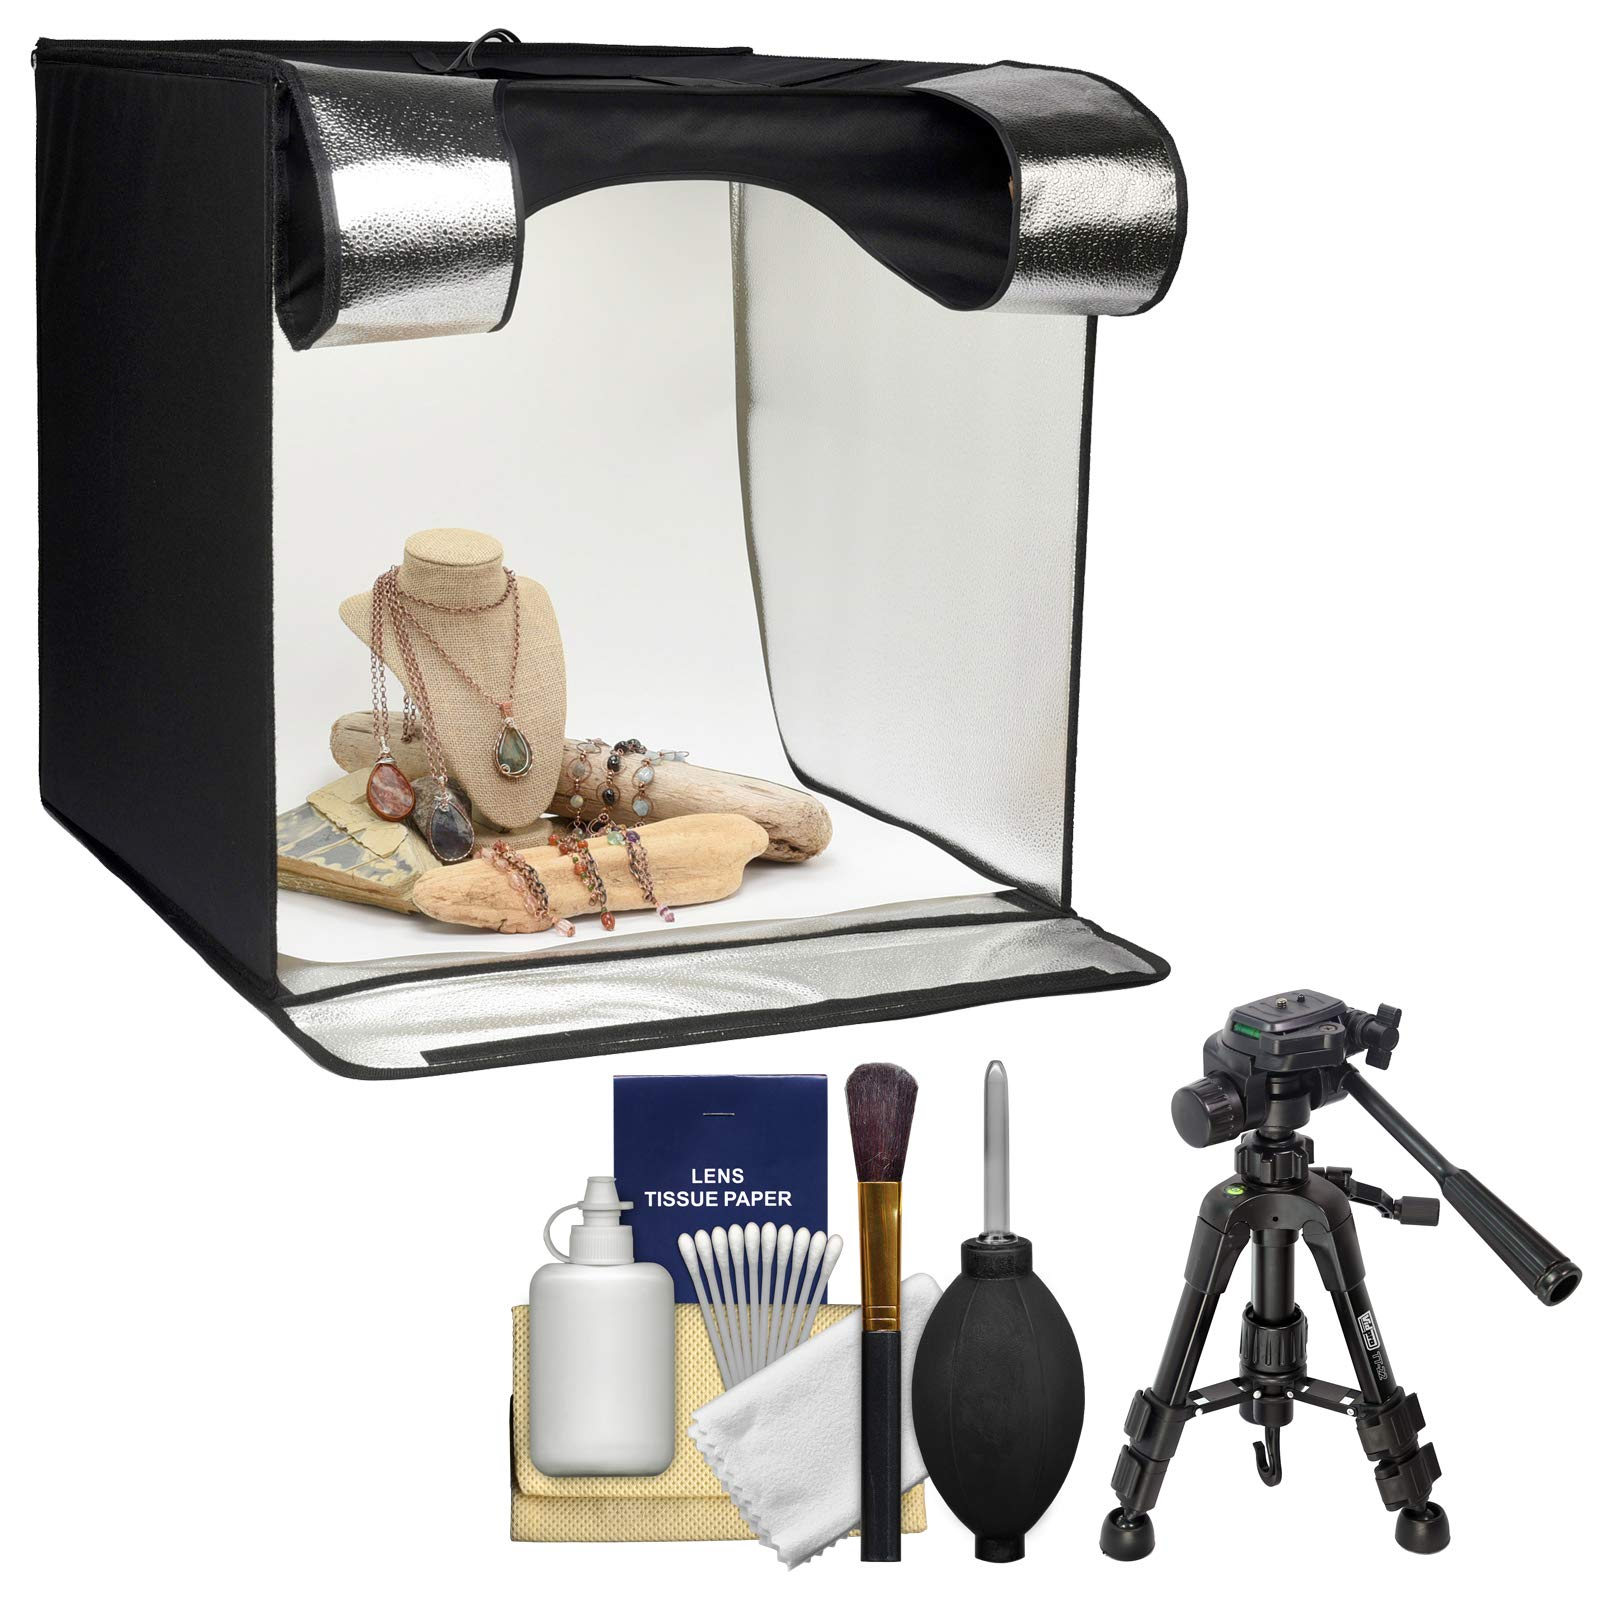 Smith-Victor 15.5'' Desktop LED Light Box Studio Tent with Turntable, 4 Backgrounds & Case with Macro Tripod + Cleaning Kit by Smith-Victor (Image #1)